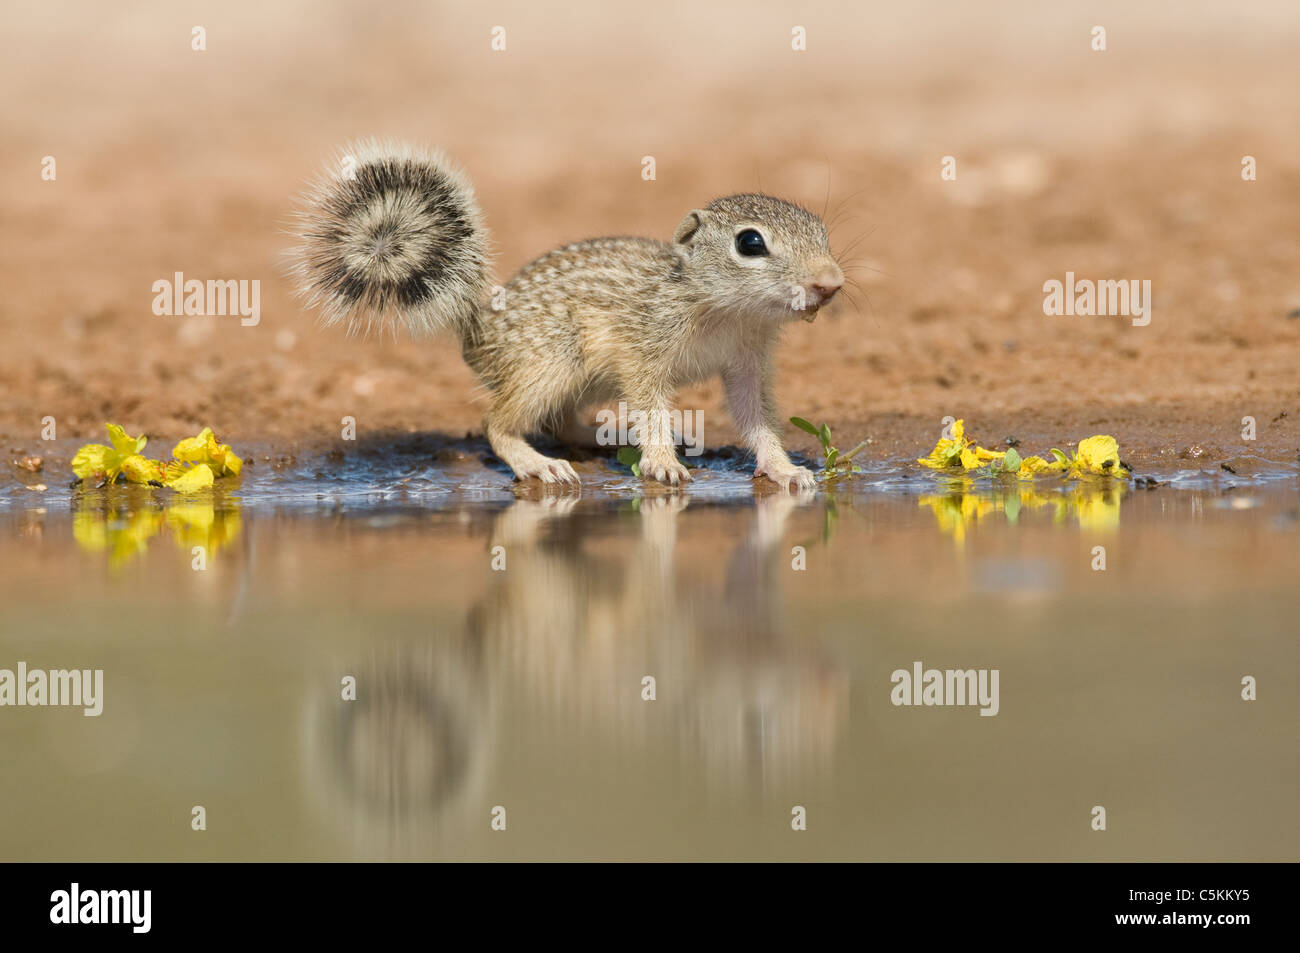 Mexican Ground Squirrel Spermophilus mexicanus or Ictidomys mexicanus drinking from water hole Southwestern USA - Stock Image